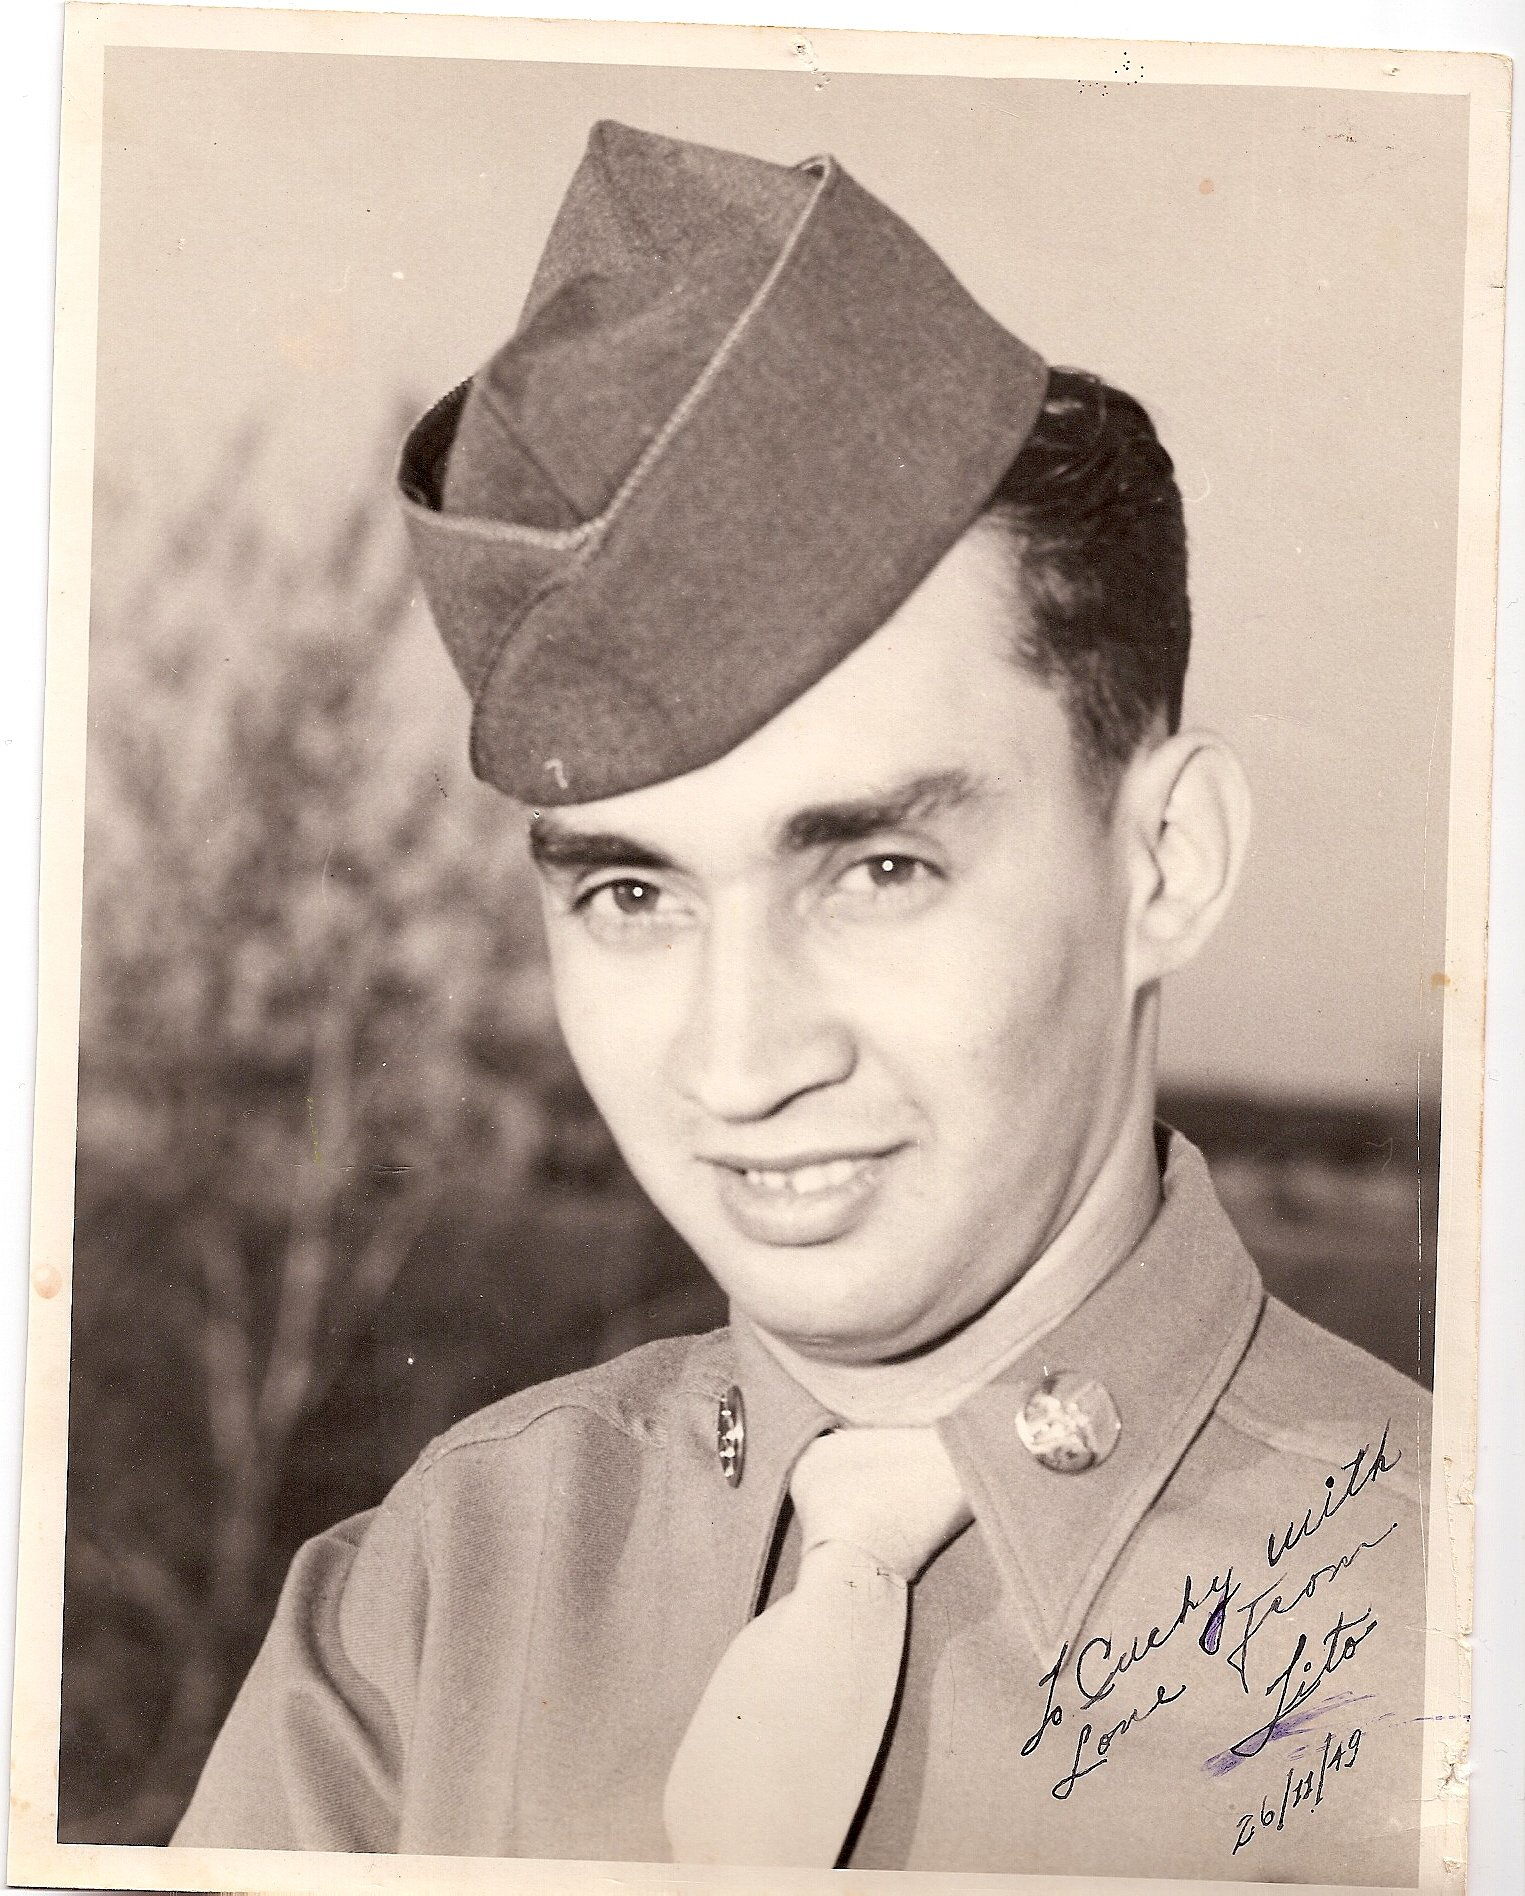 MSgt Carlos A Barradas (Tito) - Please describe who or what influenced your decision to join the Air Force.